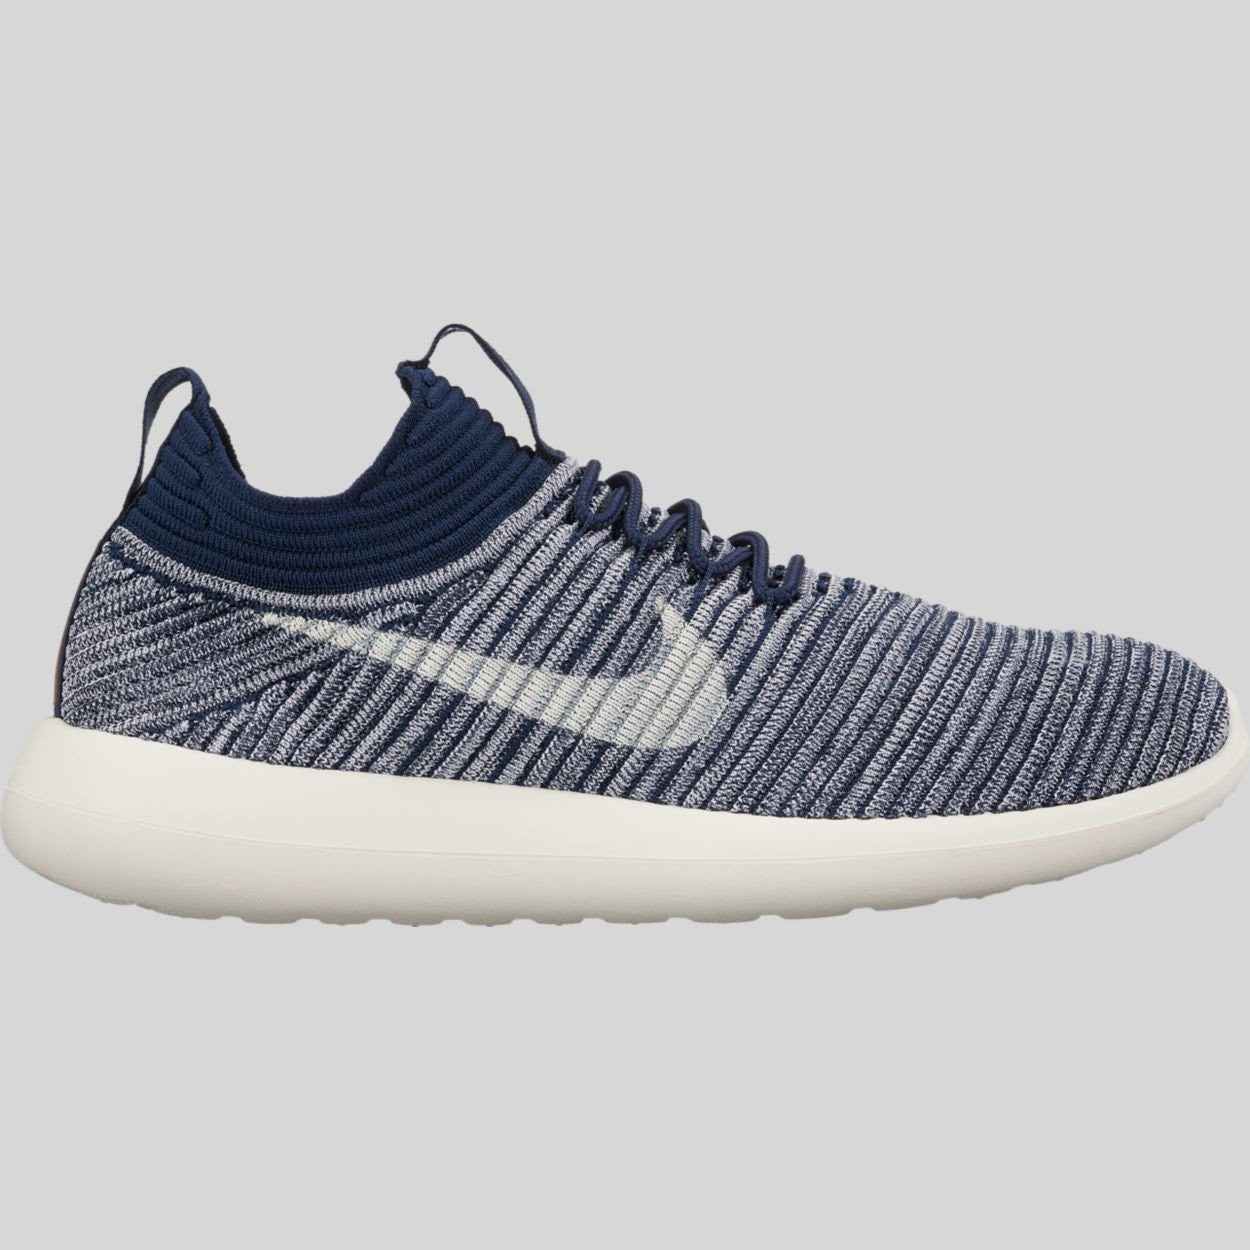 Women's Nike Roshe Two Flyknit V2 917688-400 College Navy/Metallic Sz 6.5 - 8.5